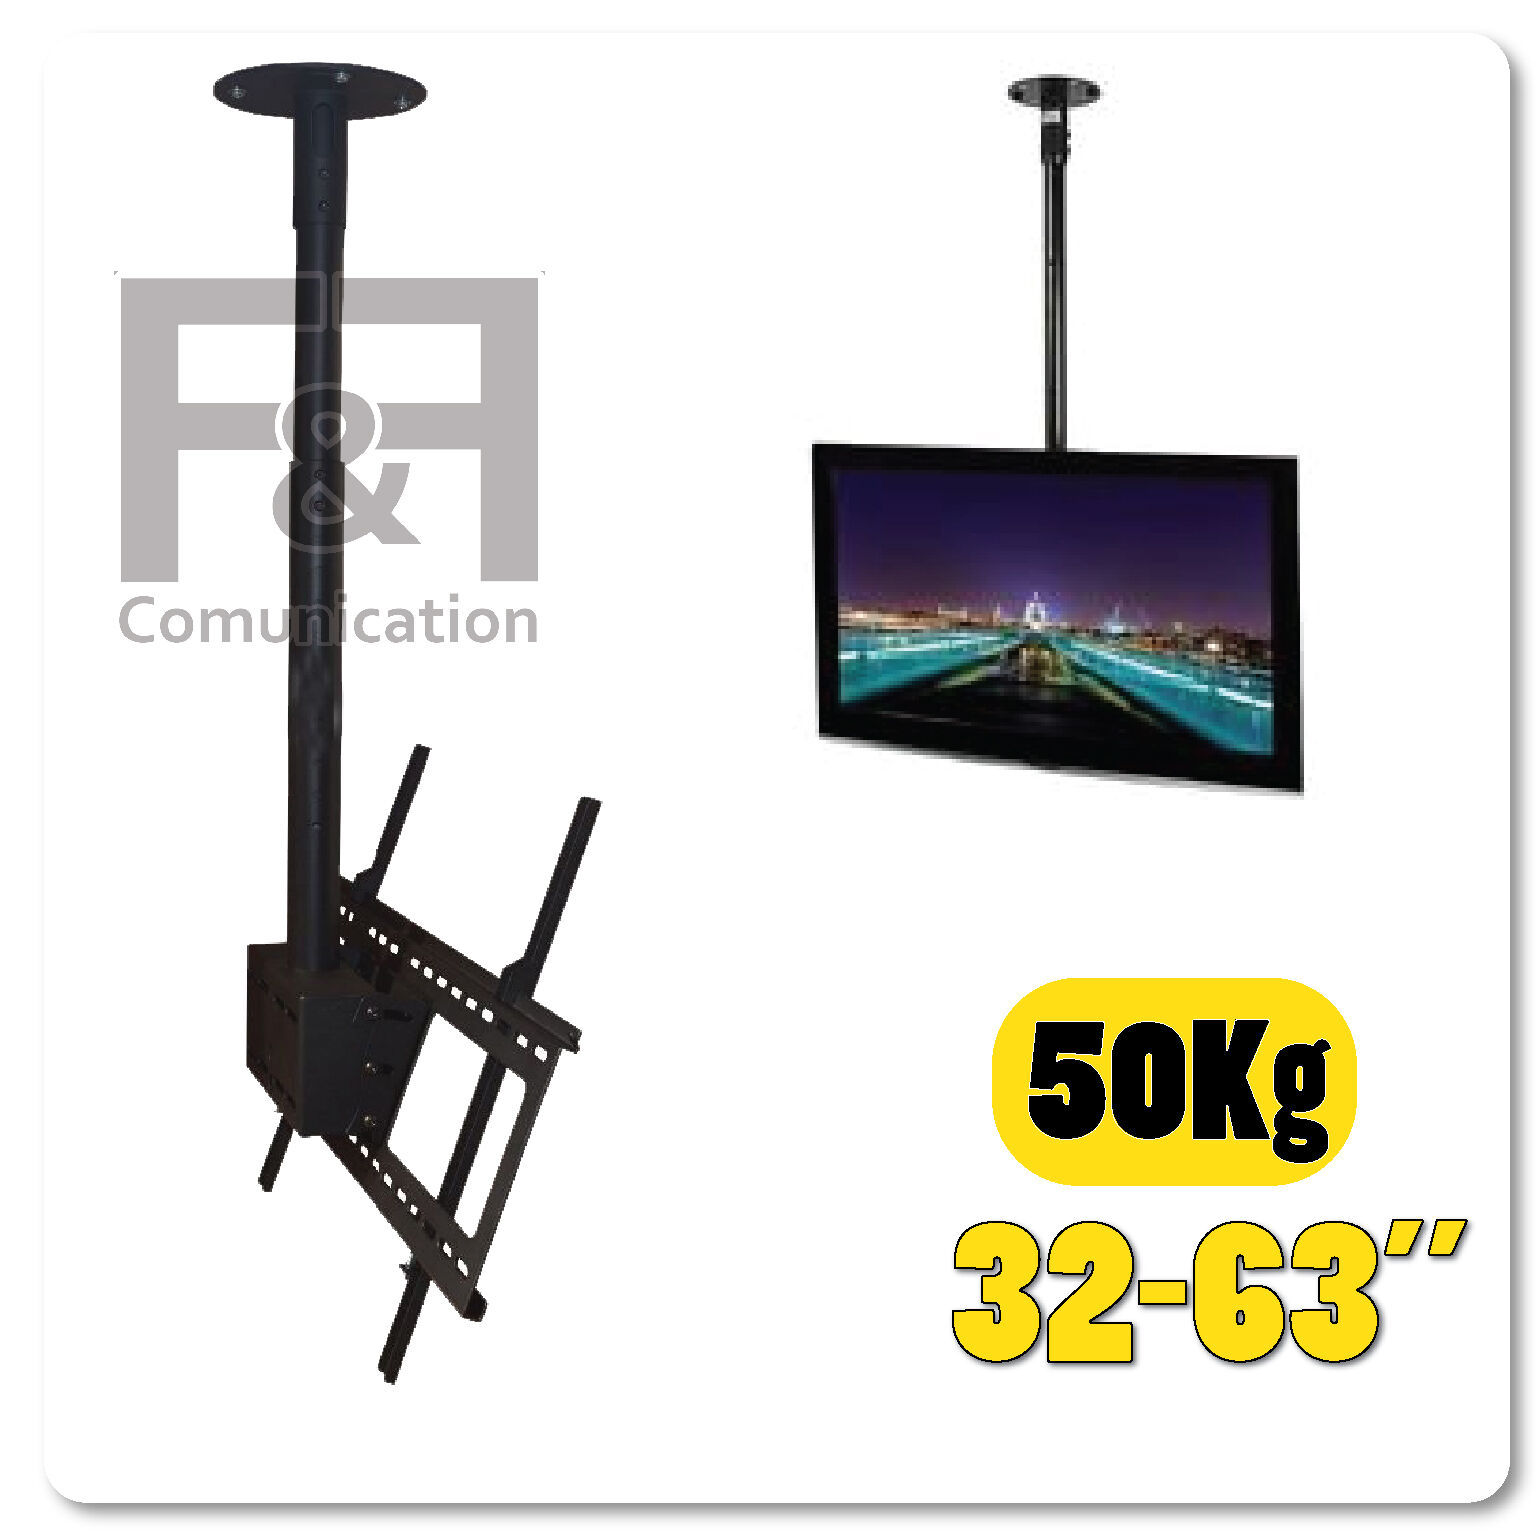 STAFFA SUPPORTO A SOFFITTO TV LED INCLINABILE REGOLABILE  DA 32 A 63 POLLICI